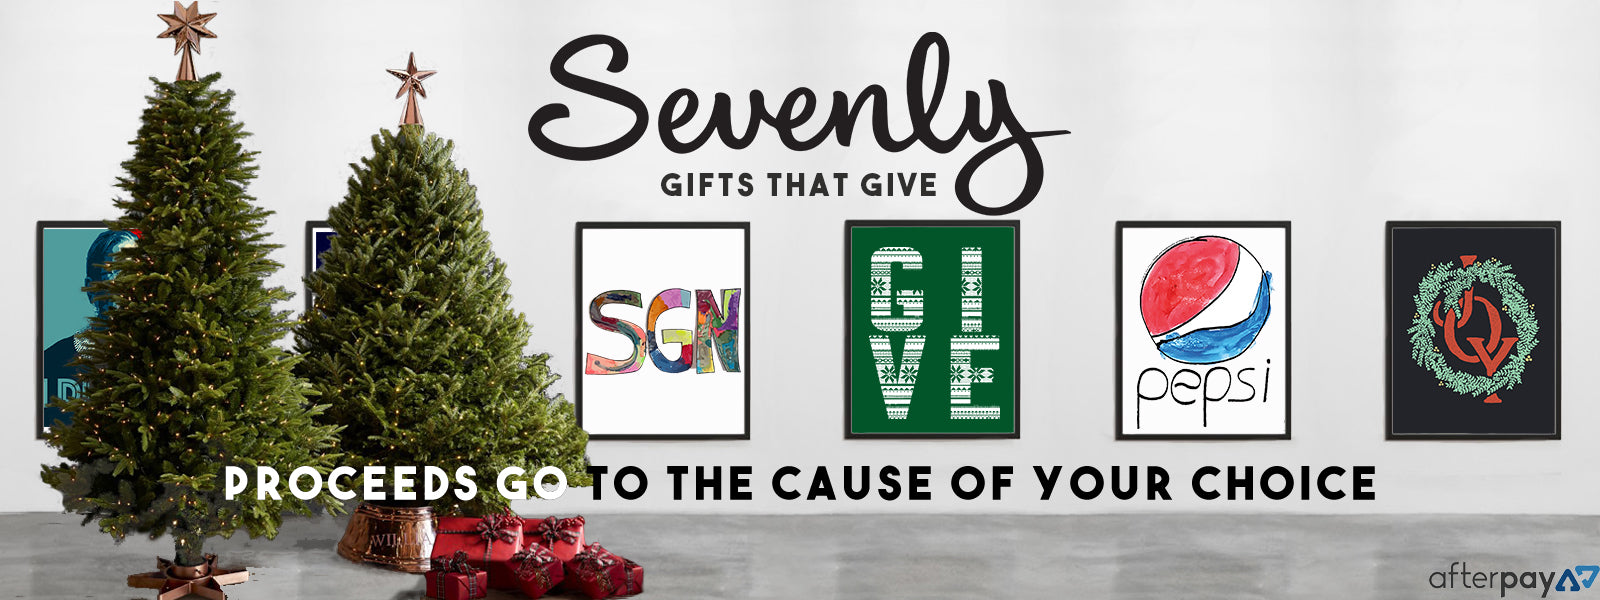 Sevenly Holiday 2020 Gifts That Give